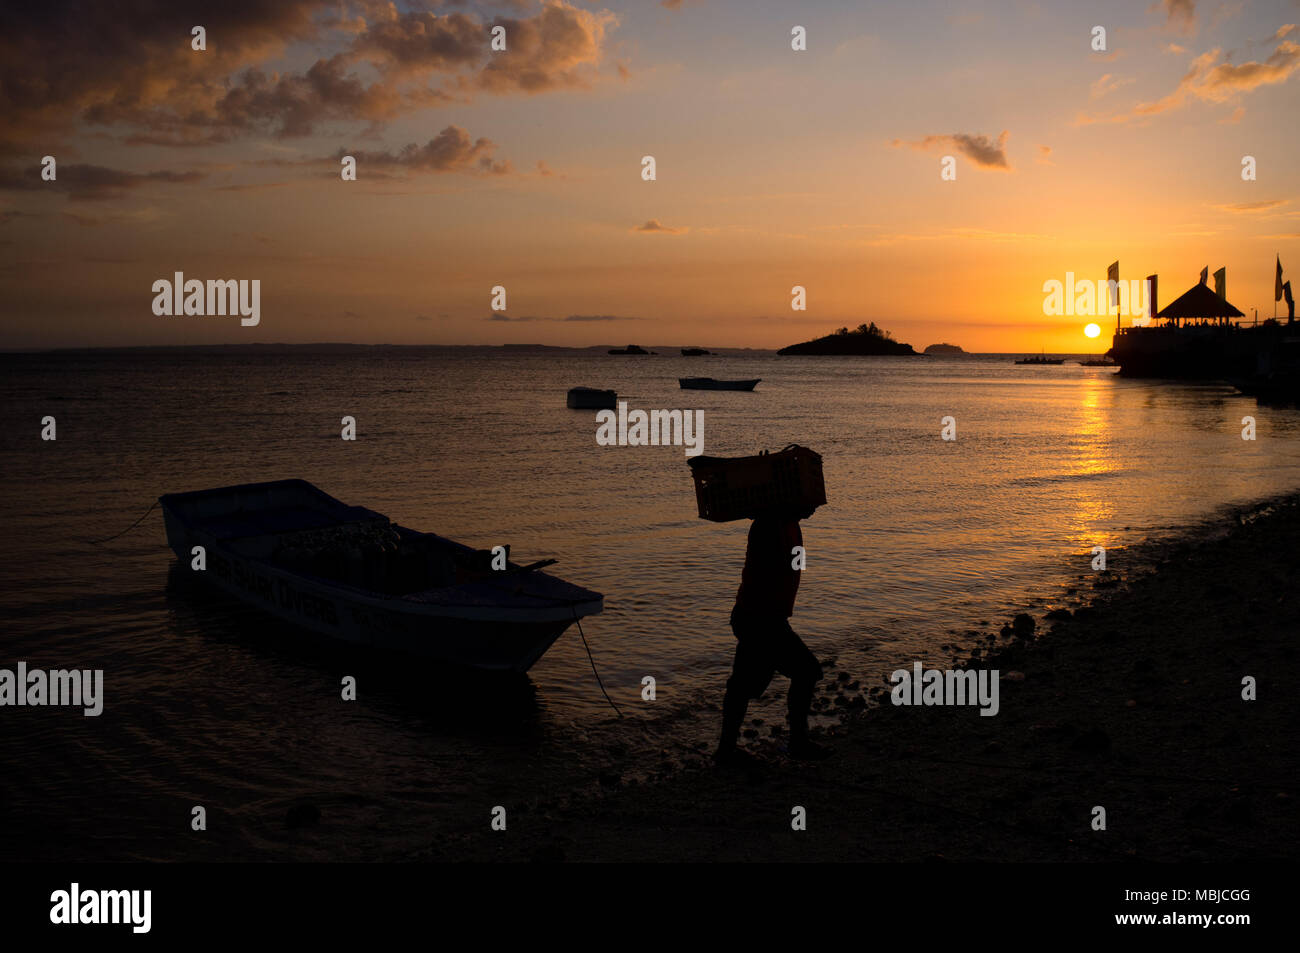 A man carries supplies of food and drink ashore from a boat at